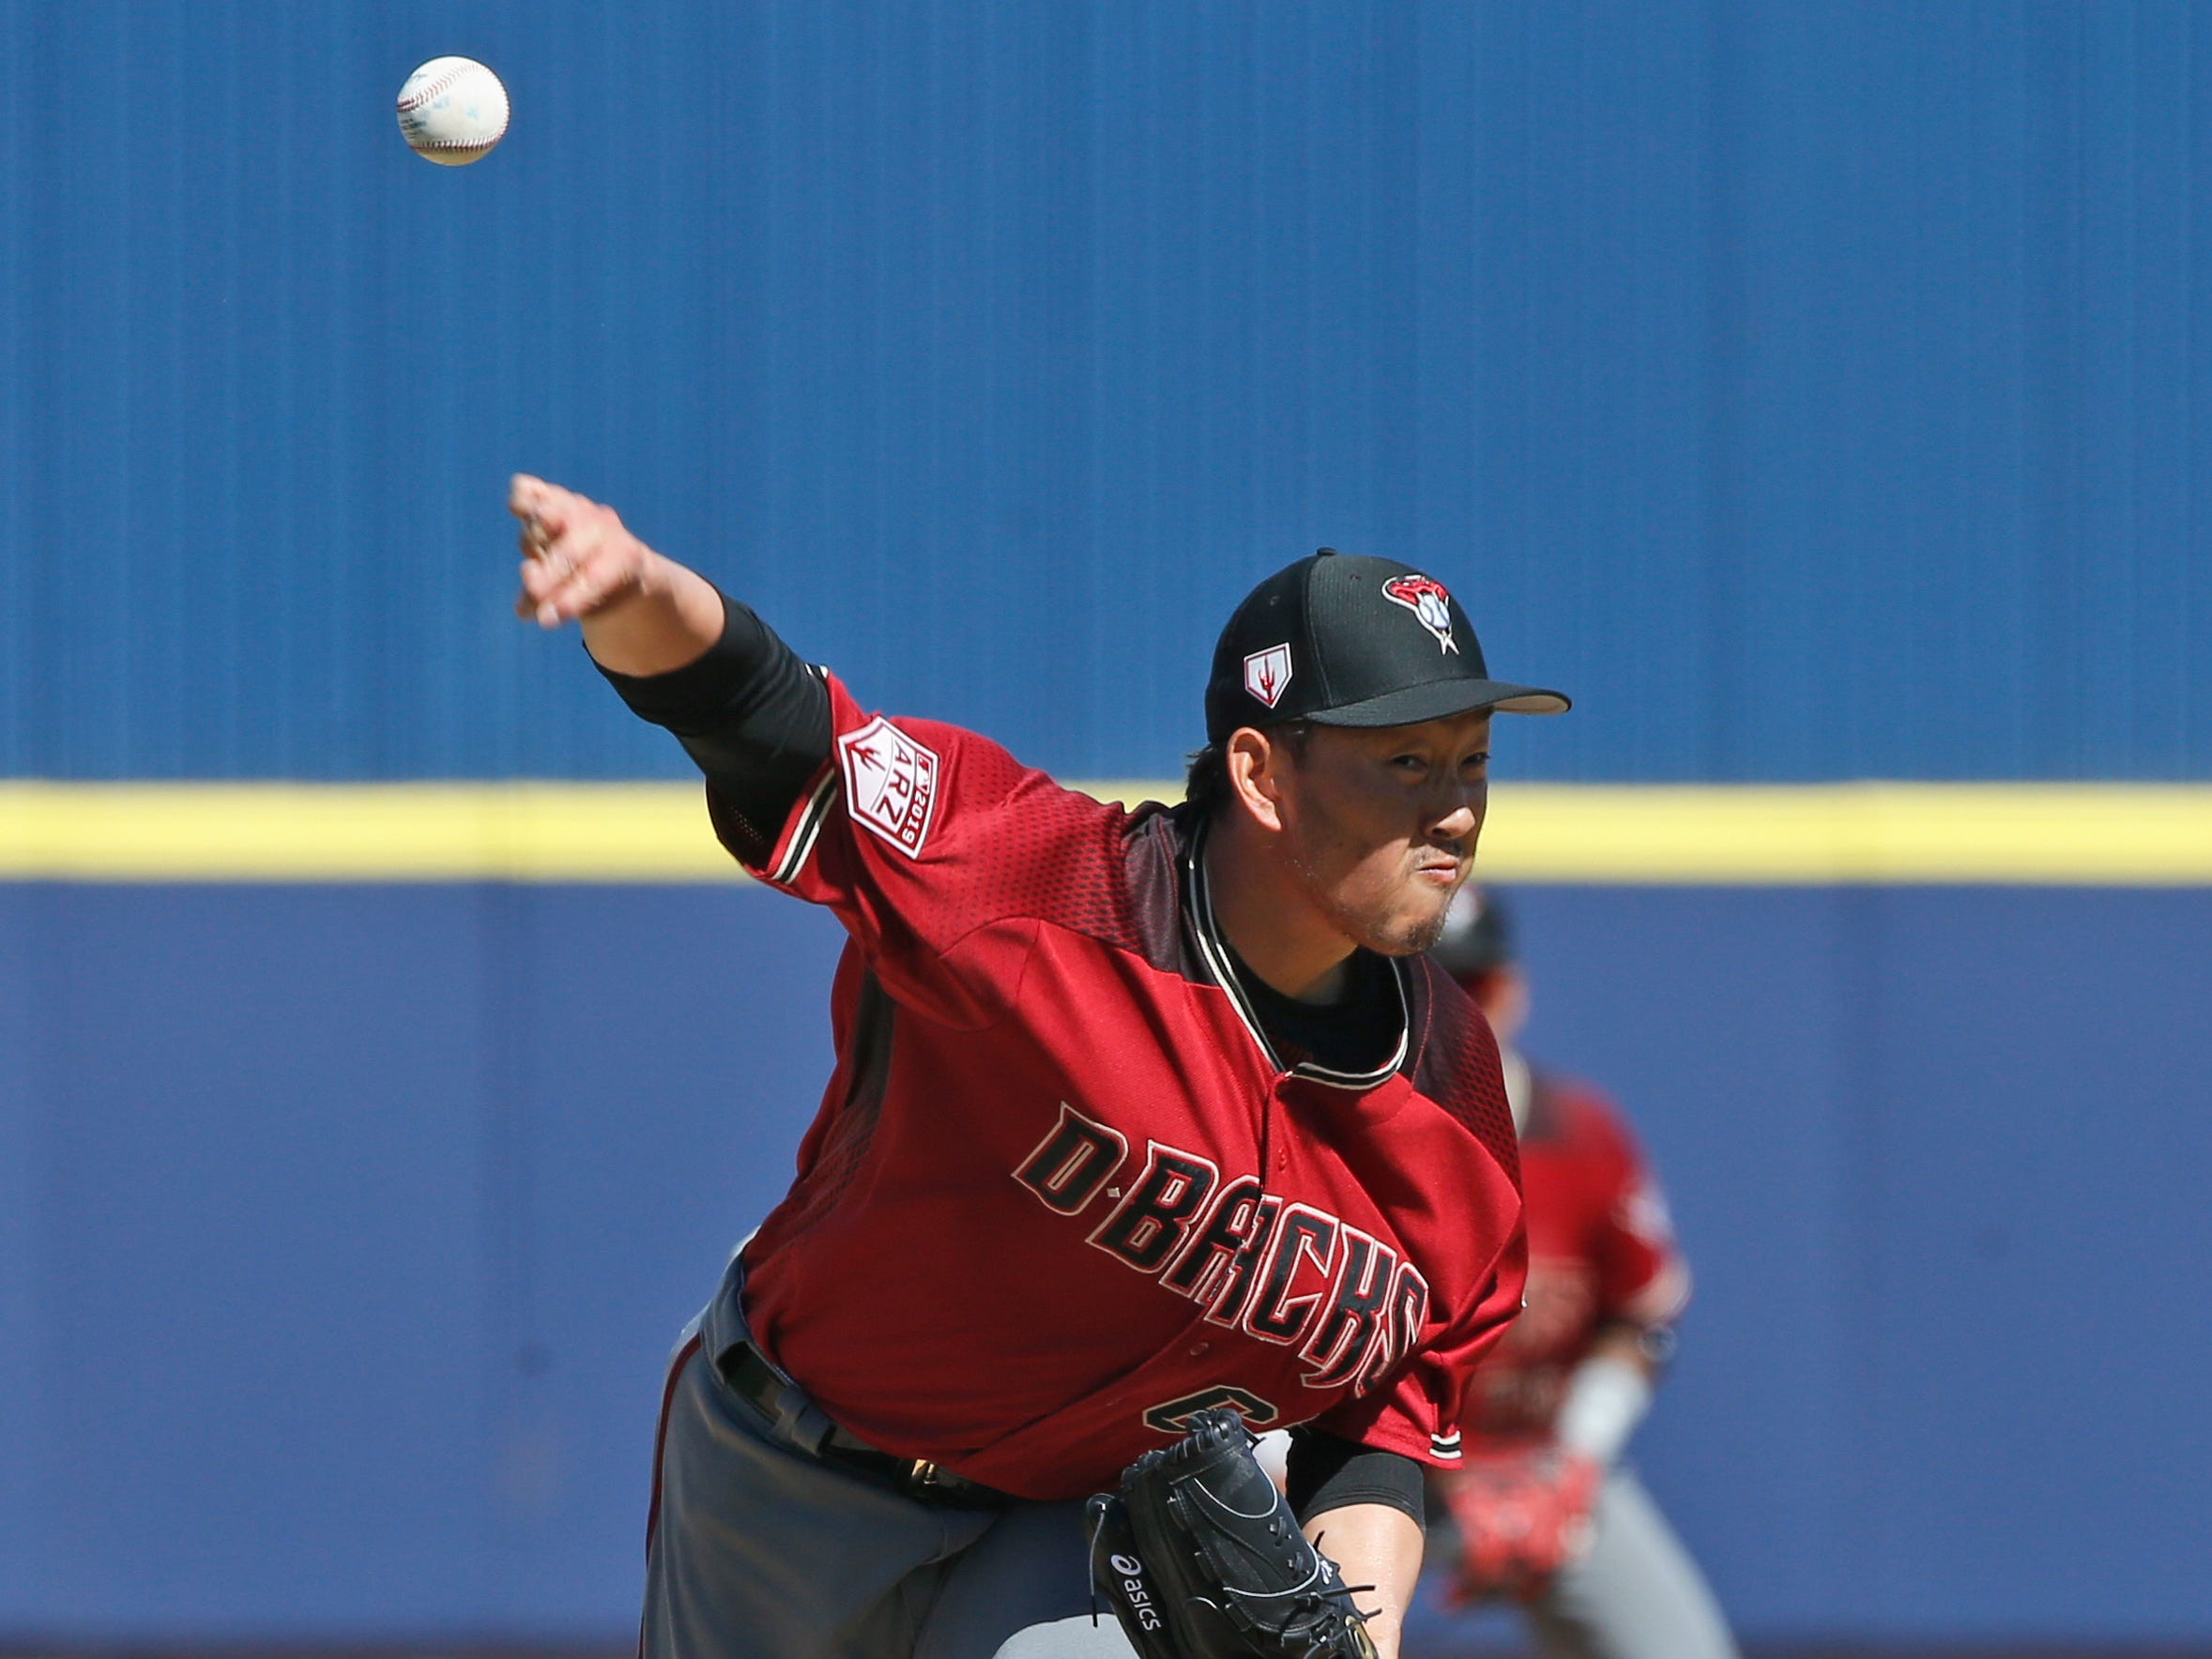 Arizona Diamondbacks pitcher Yoshihisa Hirano throws in the sixth inning of a spring training baseball game against the Milwaukee Brewers, Friday, March 8, 2019, in Phoenix.